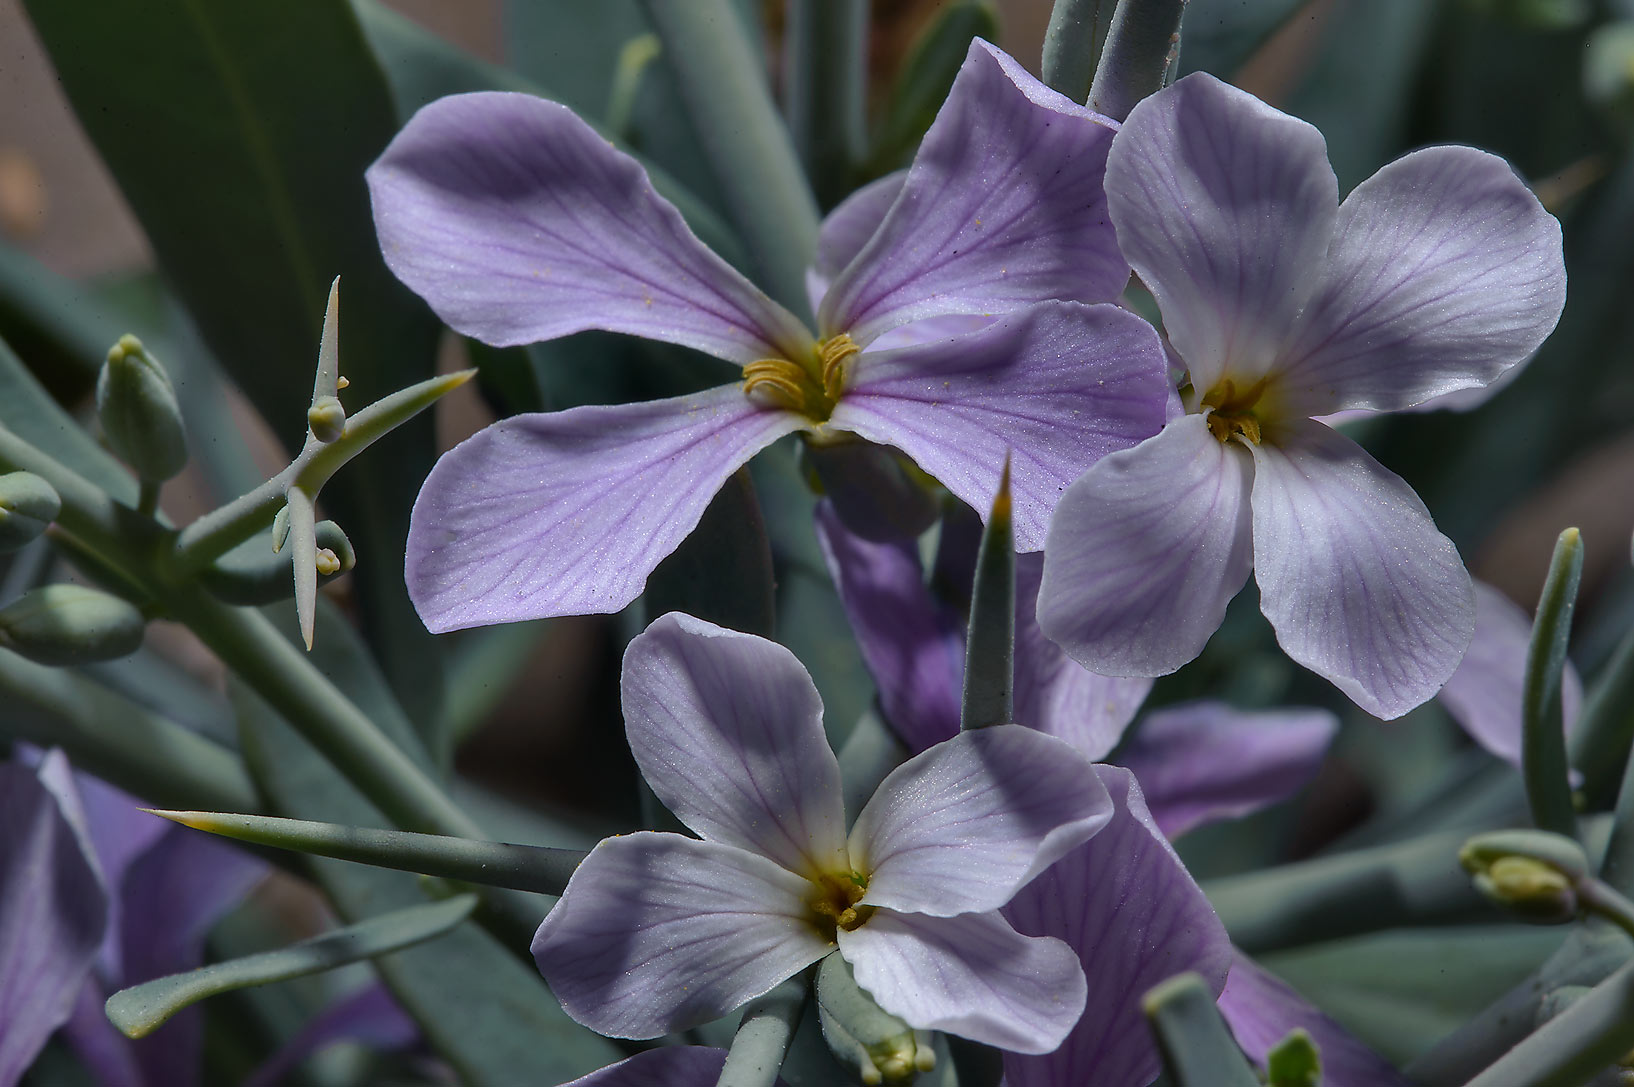 Close up of flowers of Zilla spinosa (Bunias...of Abu Samra Rd. in southern Qatar